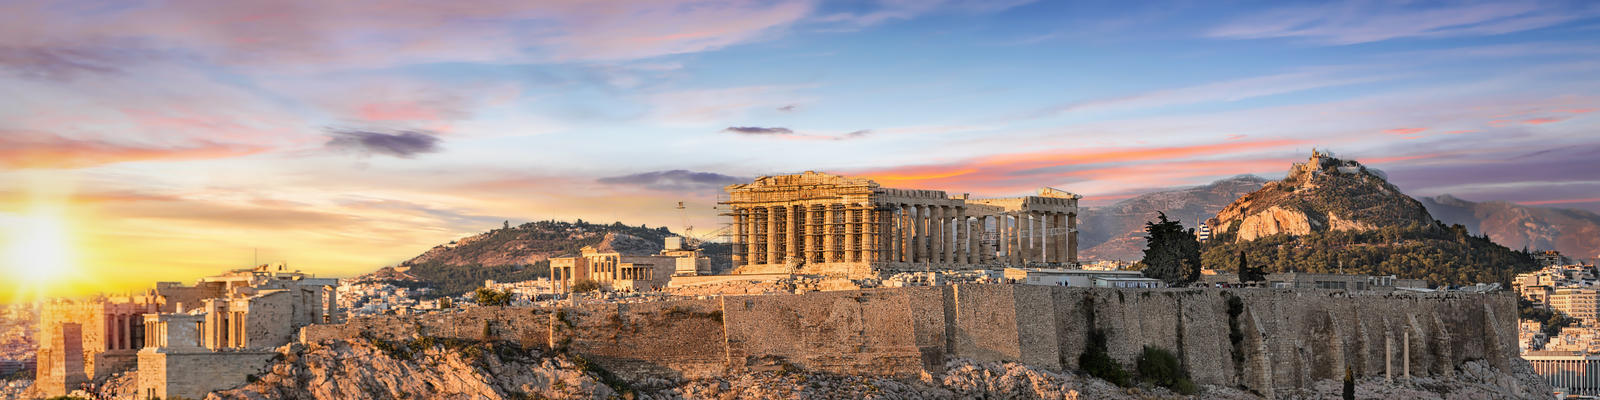 Two Days in Athens Pre- or Post-Cruise (Photo: Sven Hansche/Shutterstock.com)